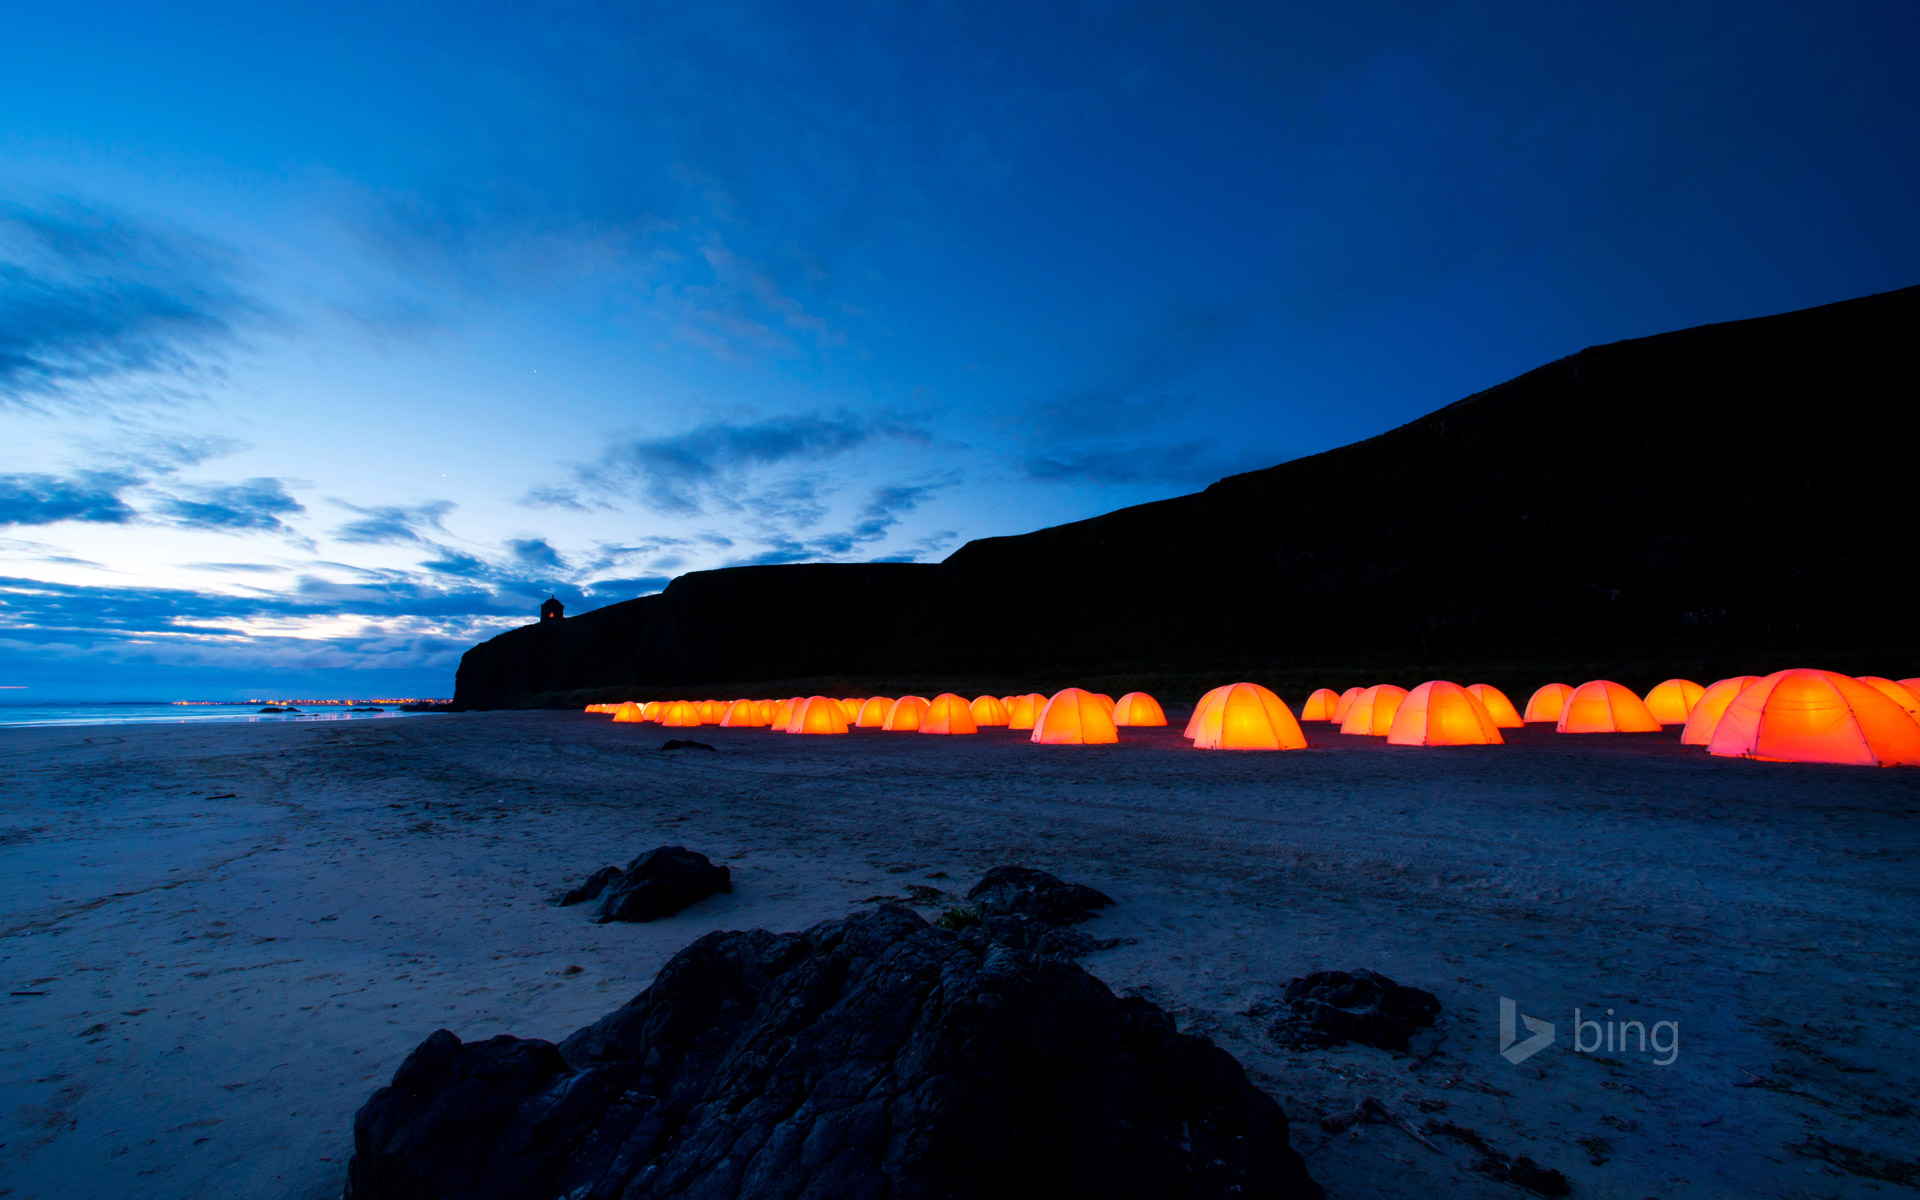 Peace Camp at Downhill Beach in Northern Ireland